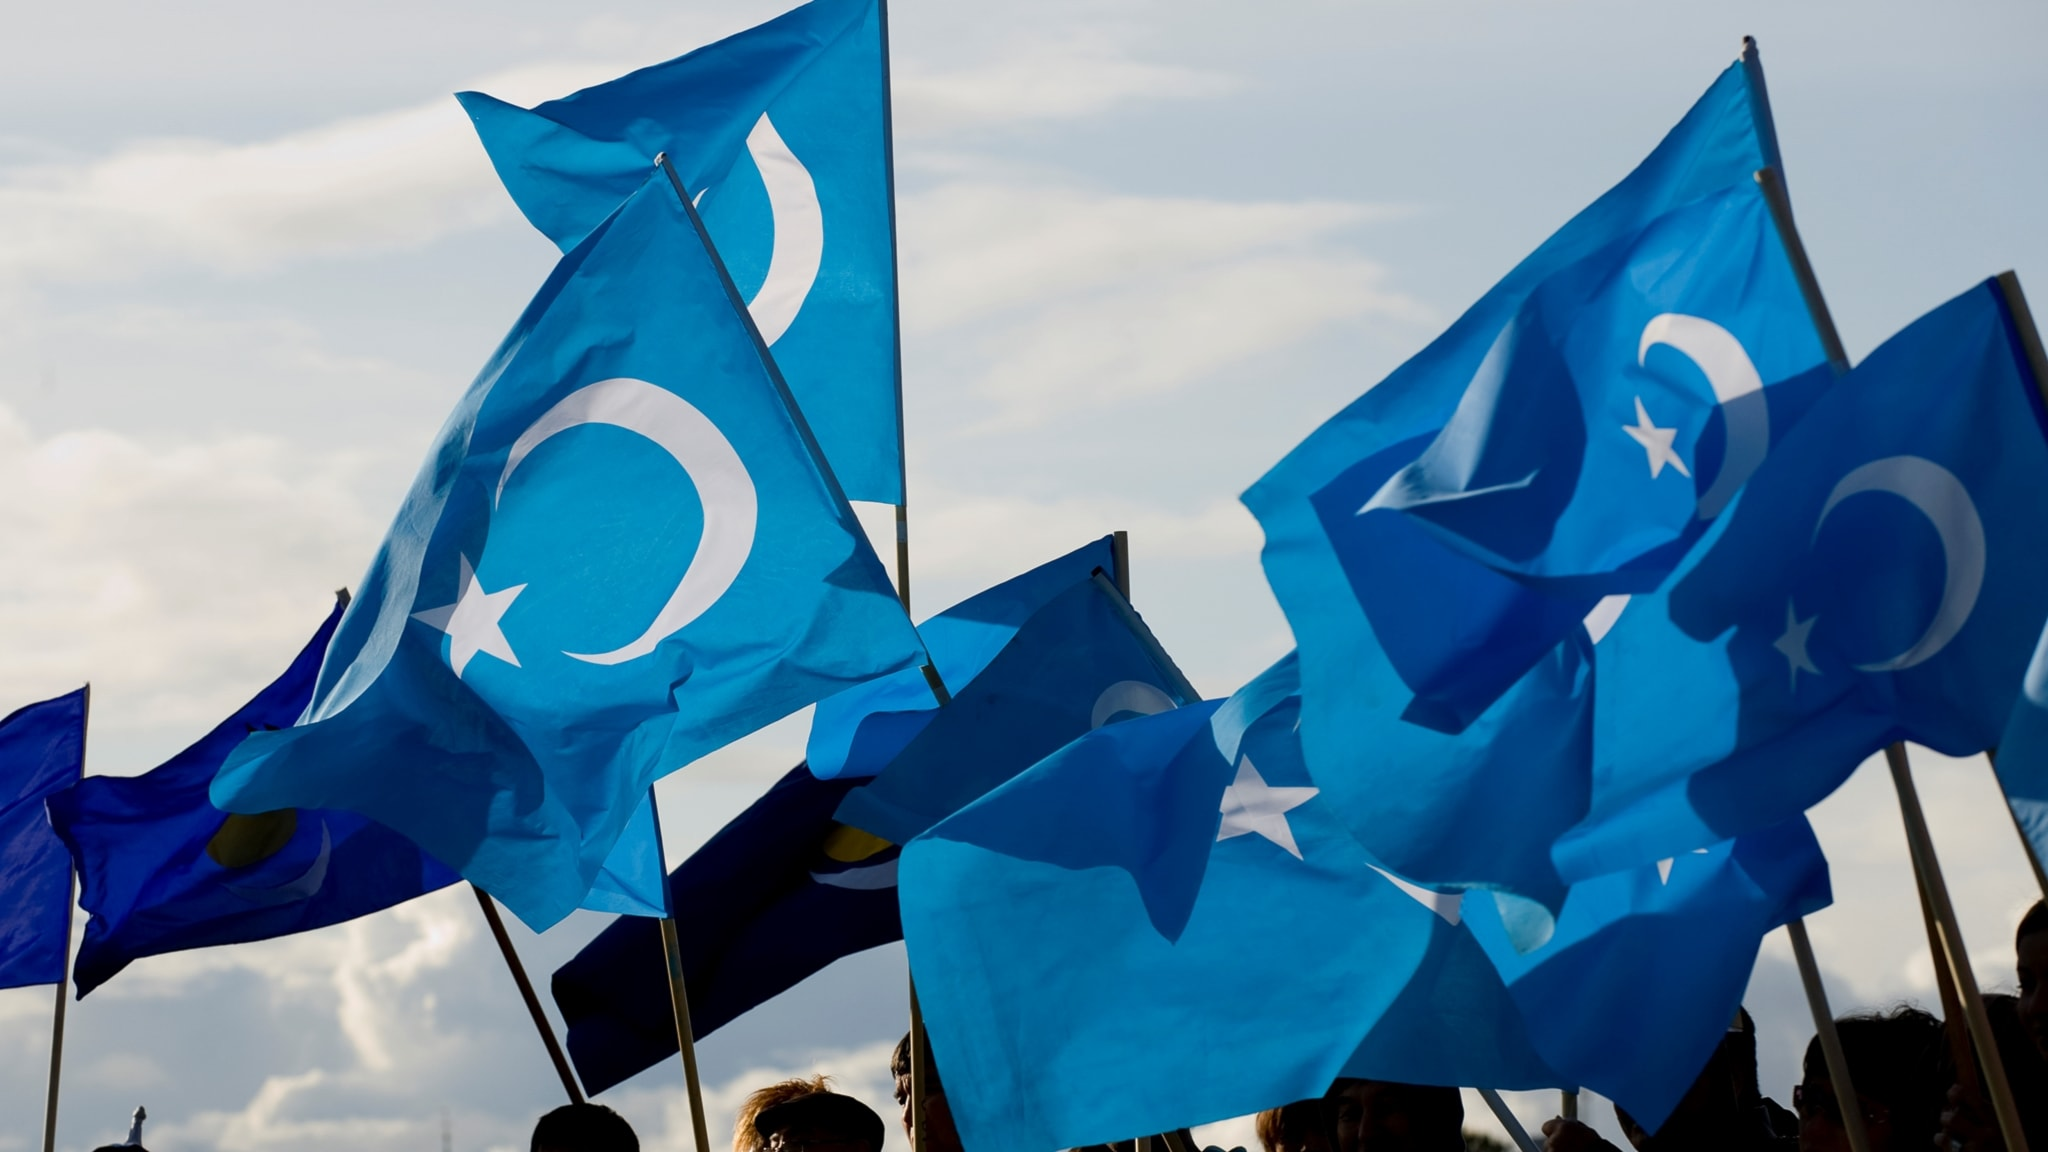 75c110c8b94 Uighurs in Sweden say they face surveillance and threats from China - Radio  Sweden